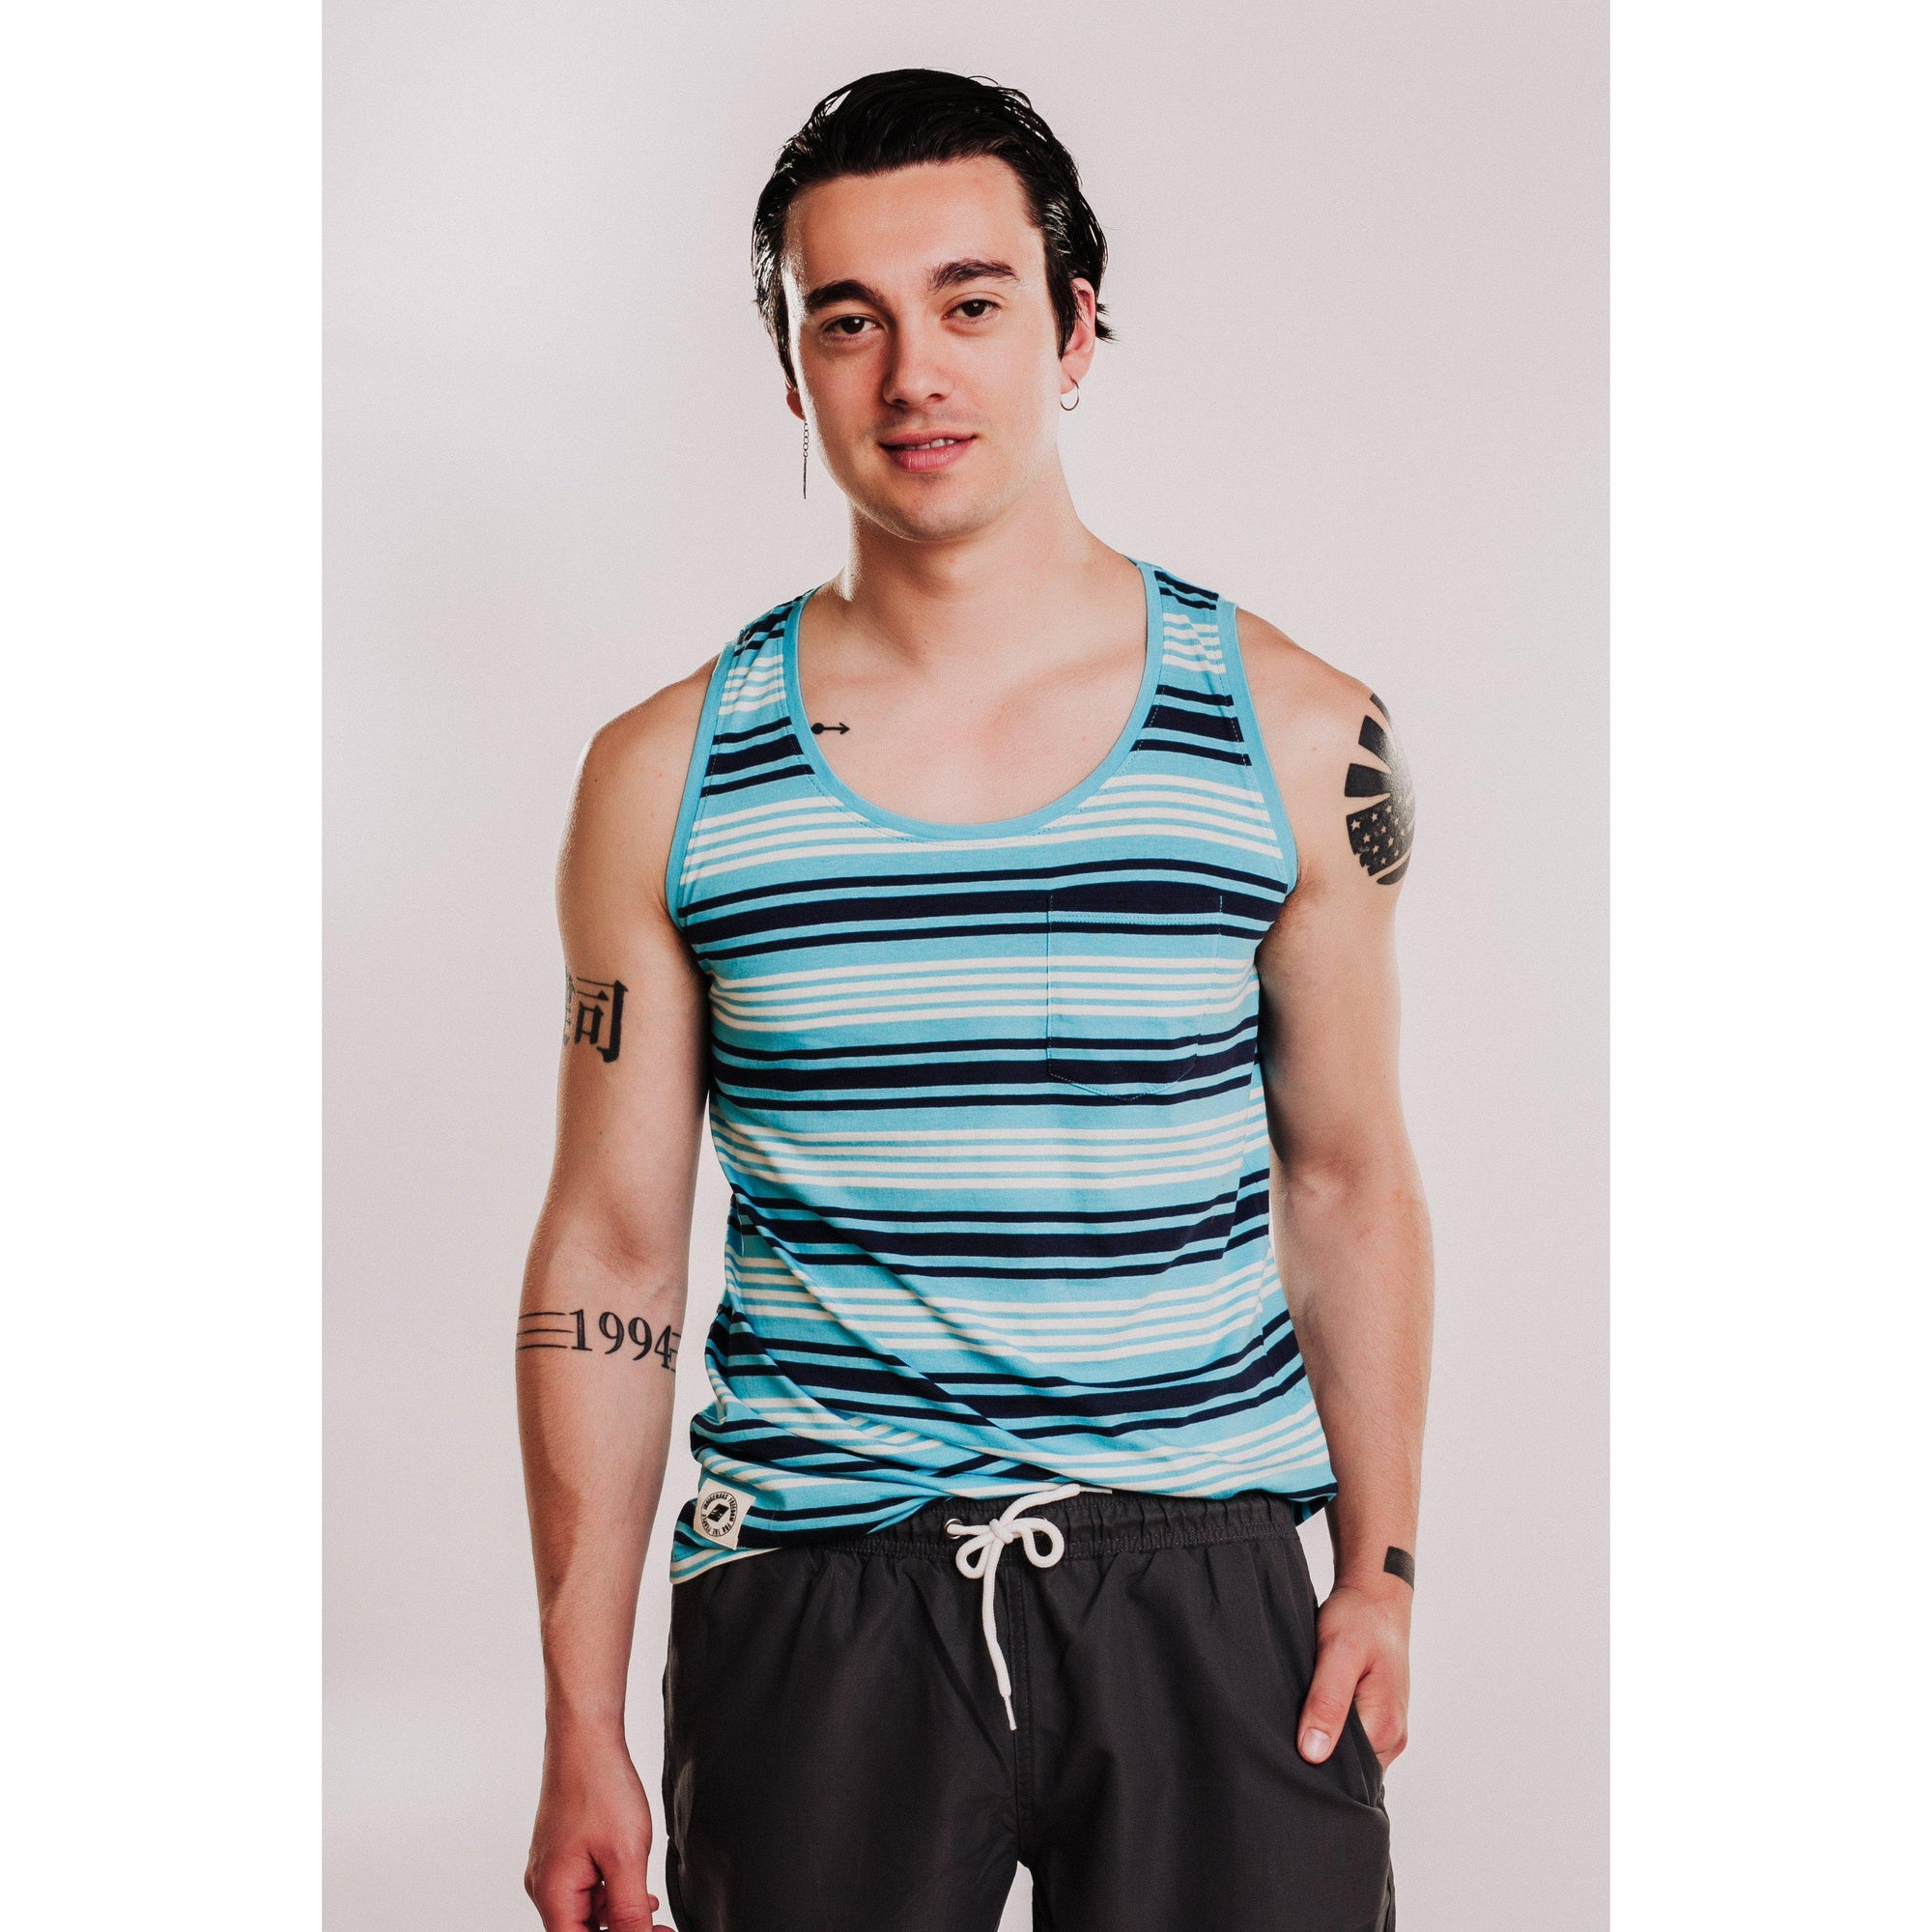 Mens Relaxed Fit Striped Tank - Blue-OneTrail Gear